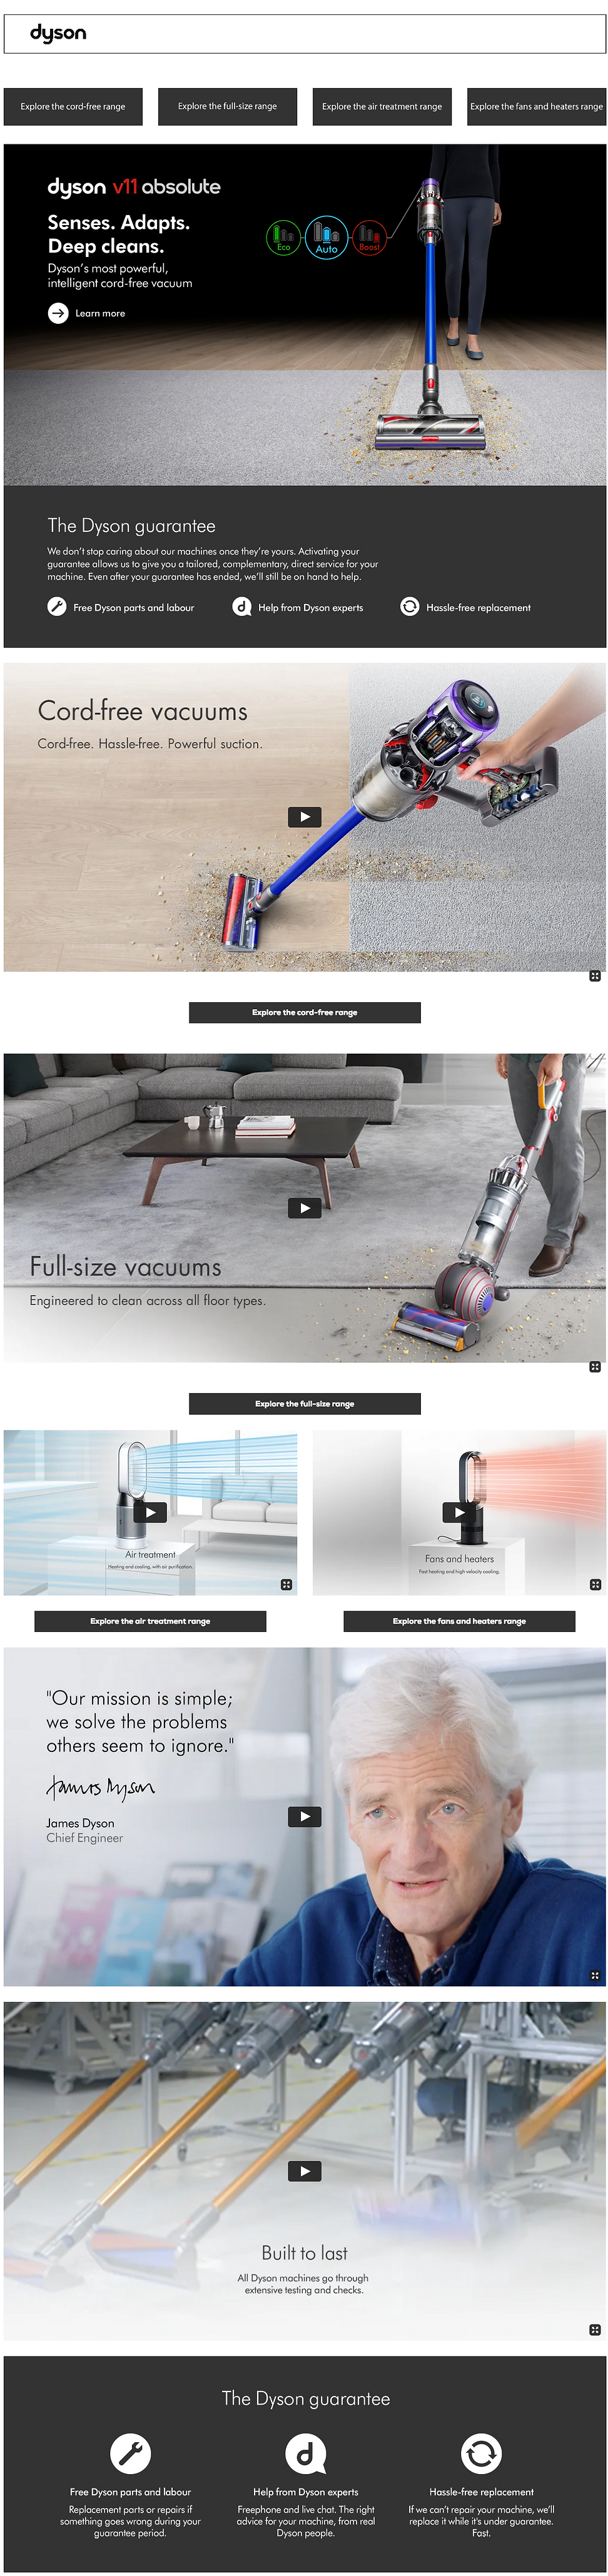 dyson landing page.png